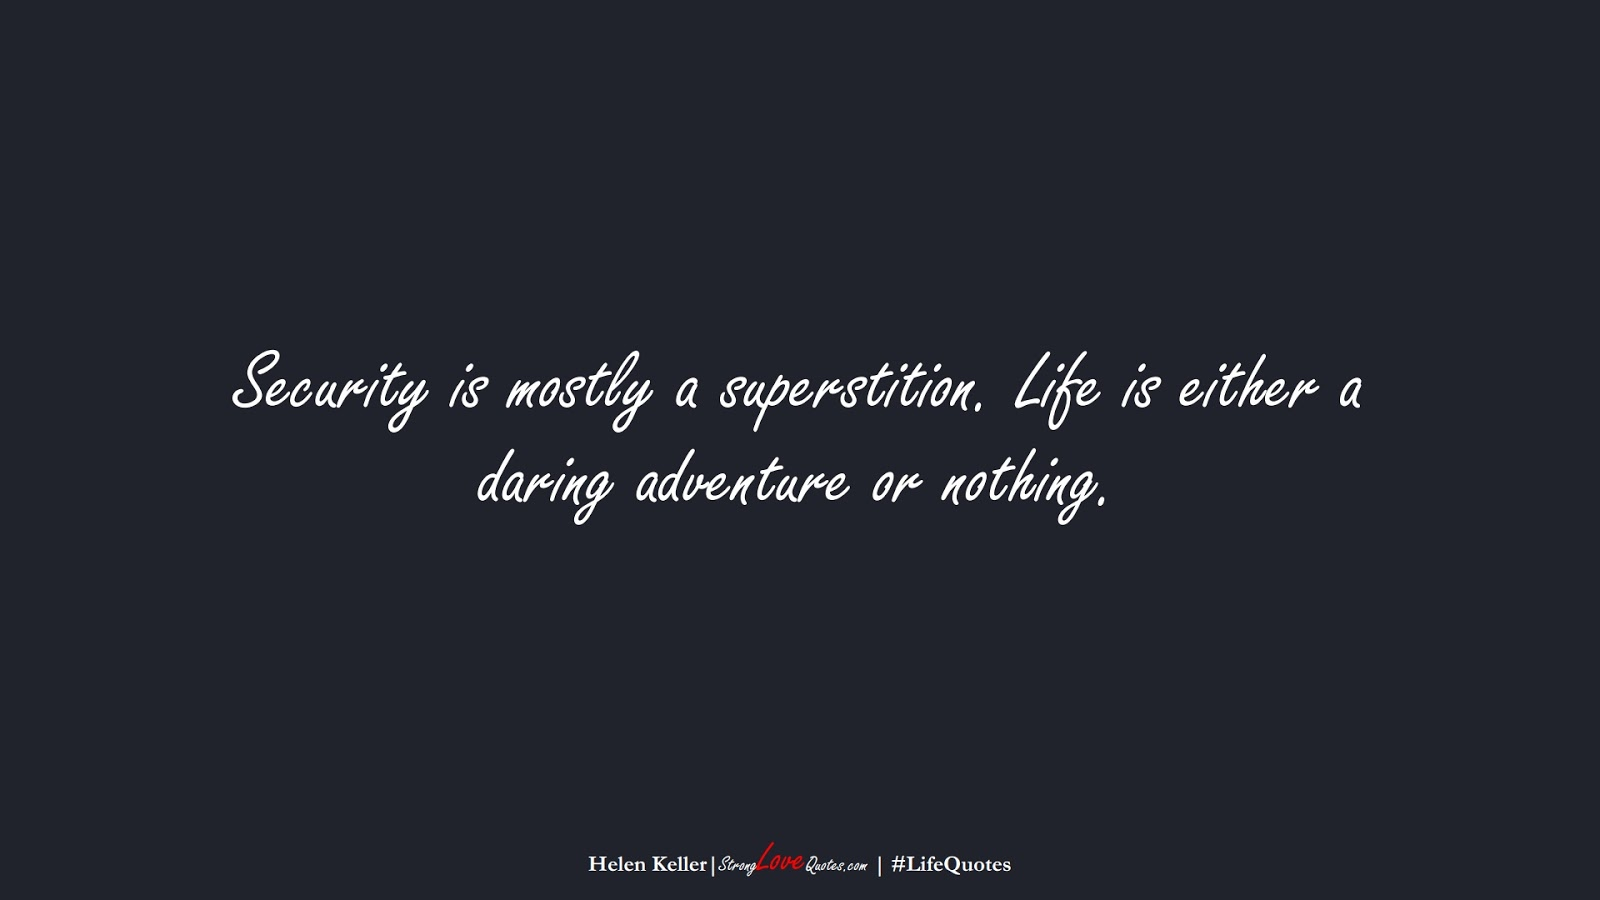 Security is mostly a superstition. Life is either a daring adventure or nothing. (Helen Keller);  #LifeQuotes